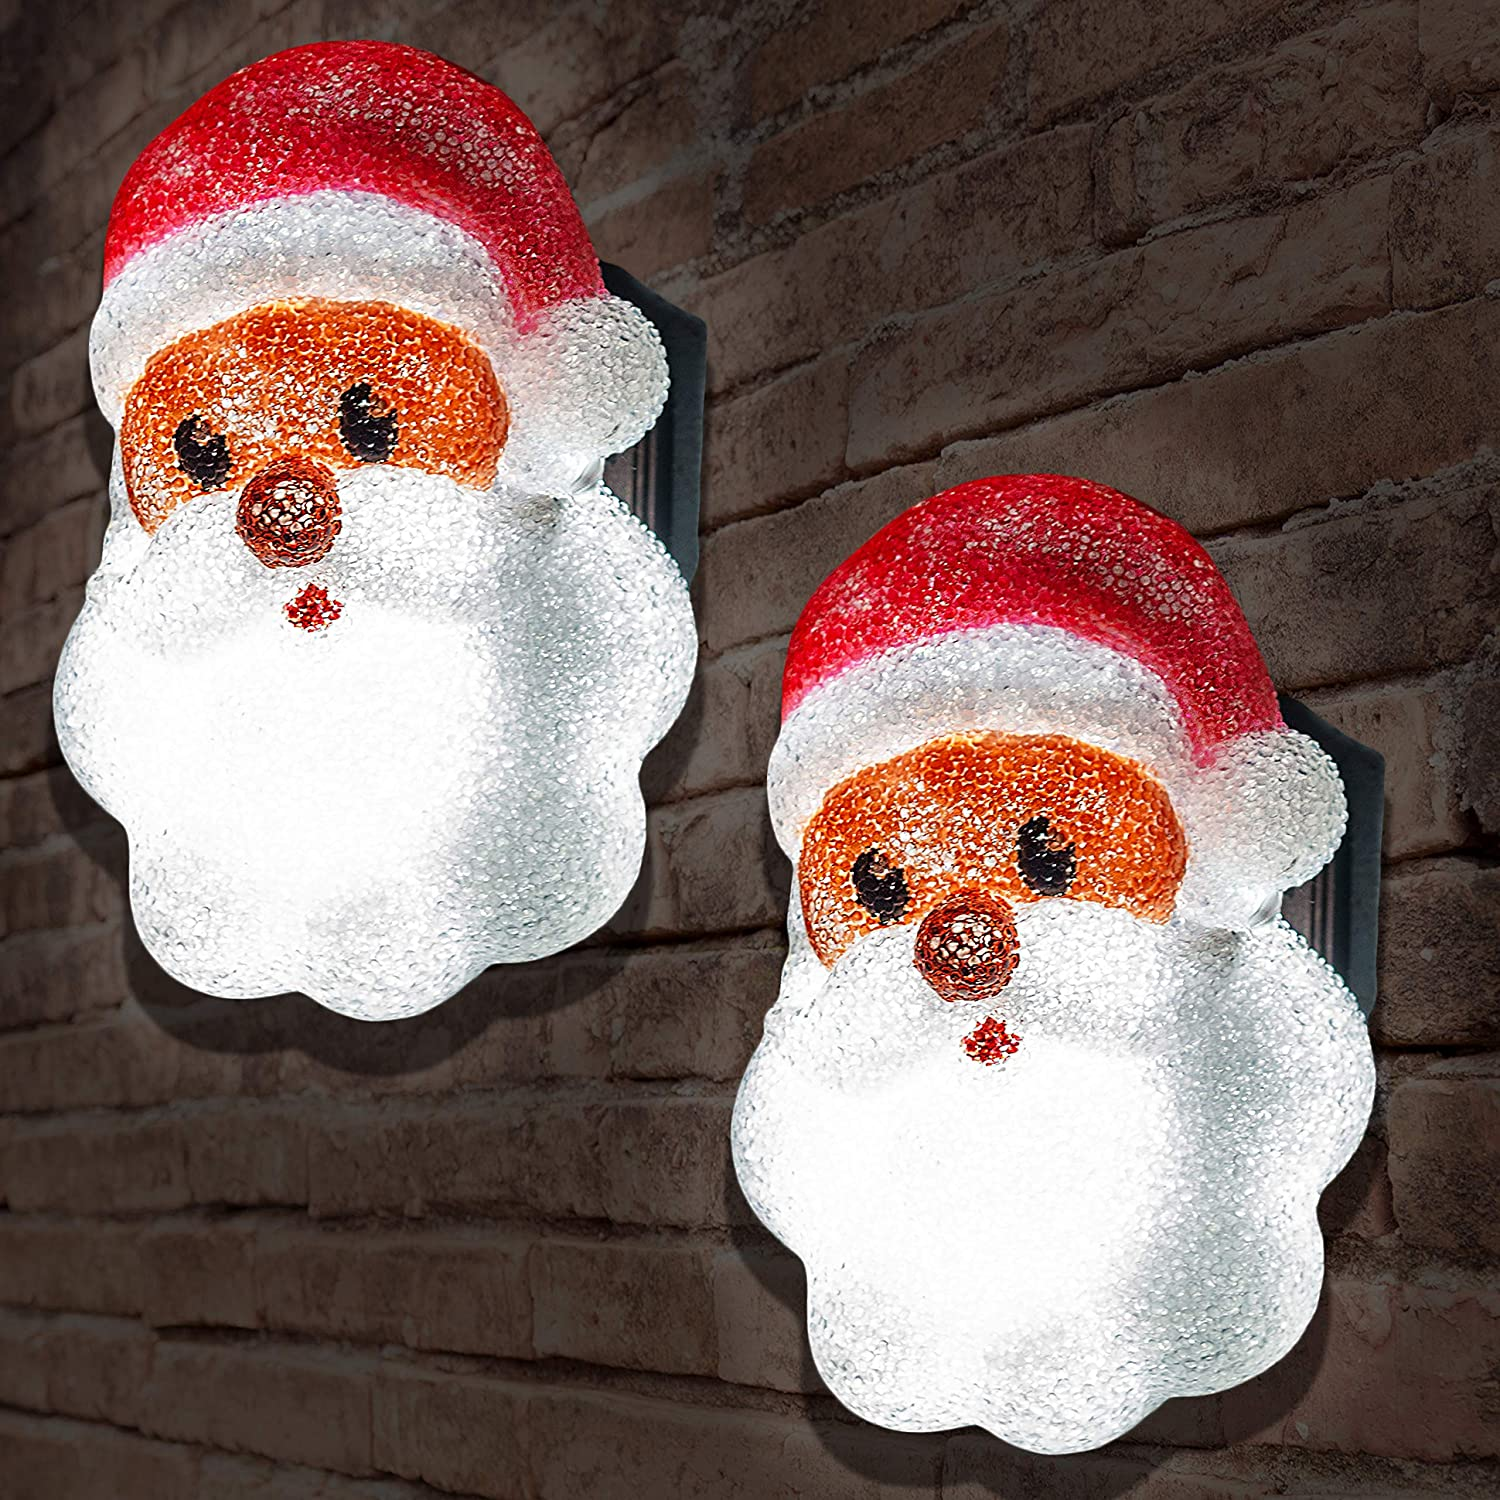 JOYIN 2 Pcs Christmas Santa Porch Light Covers for Outdoor Light Cover, Christmas Decorations, Christmas Parties, Gift Giving, and More!